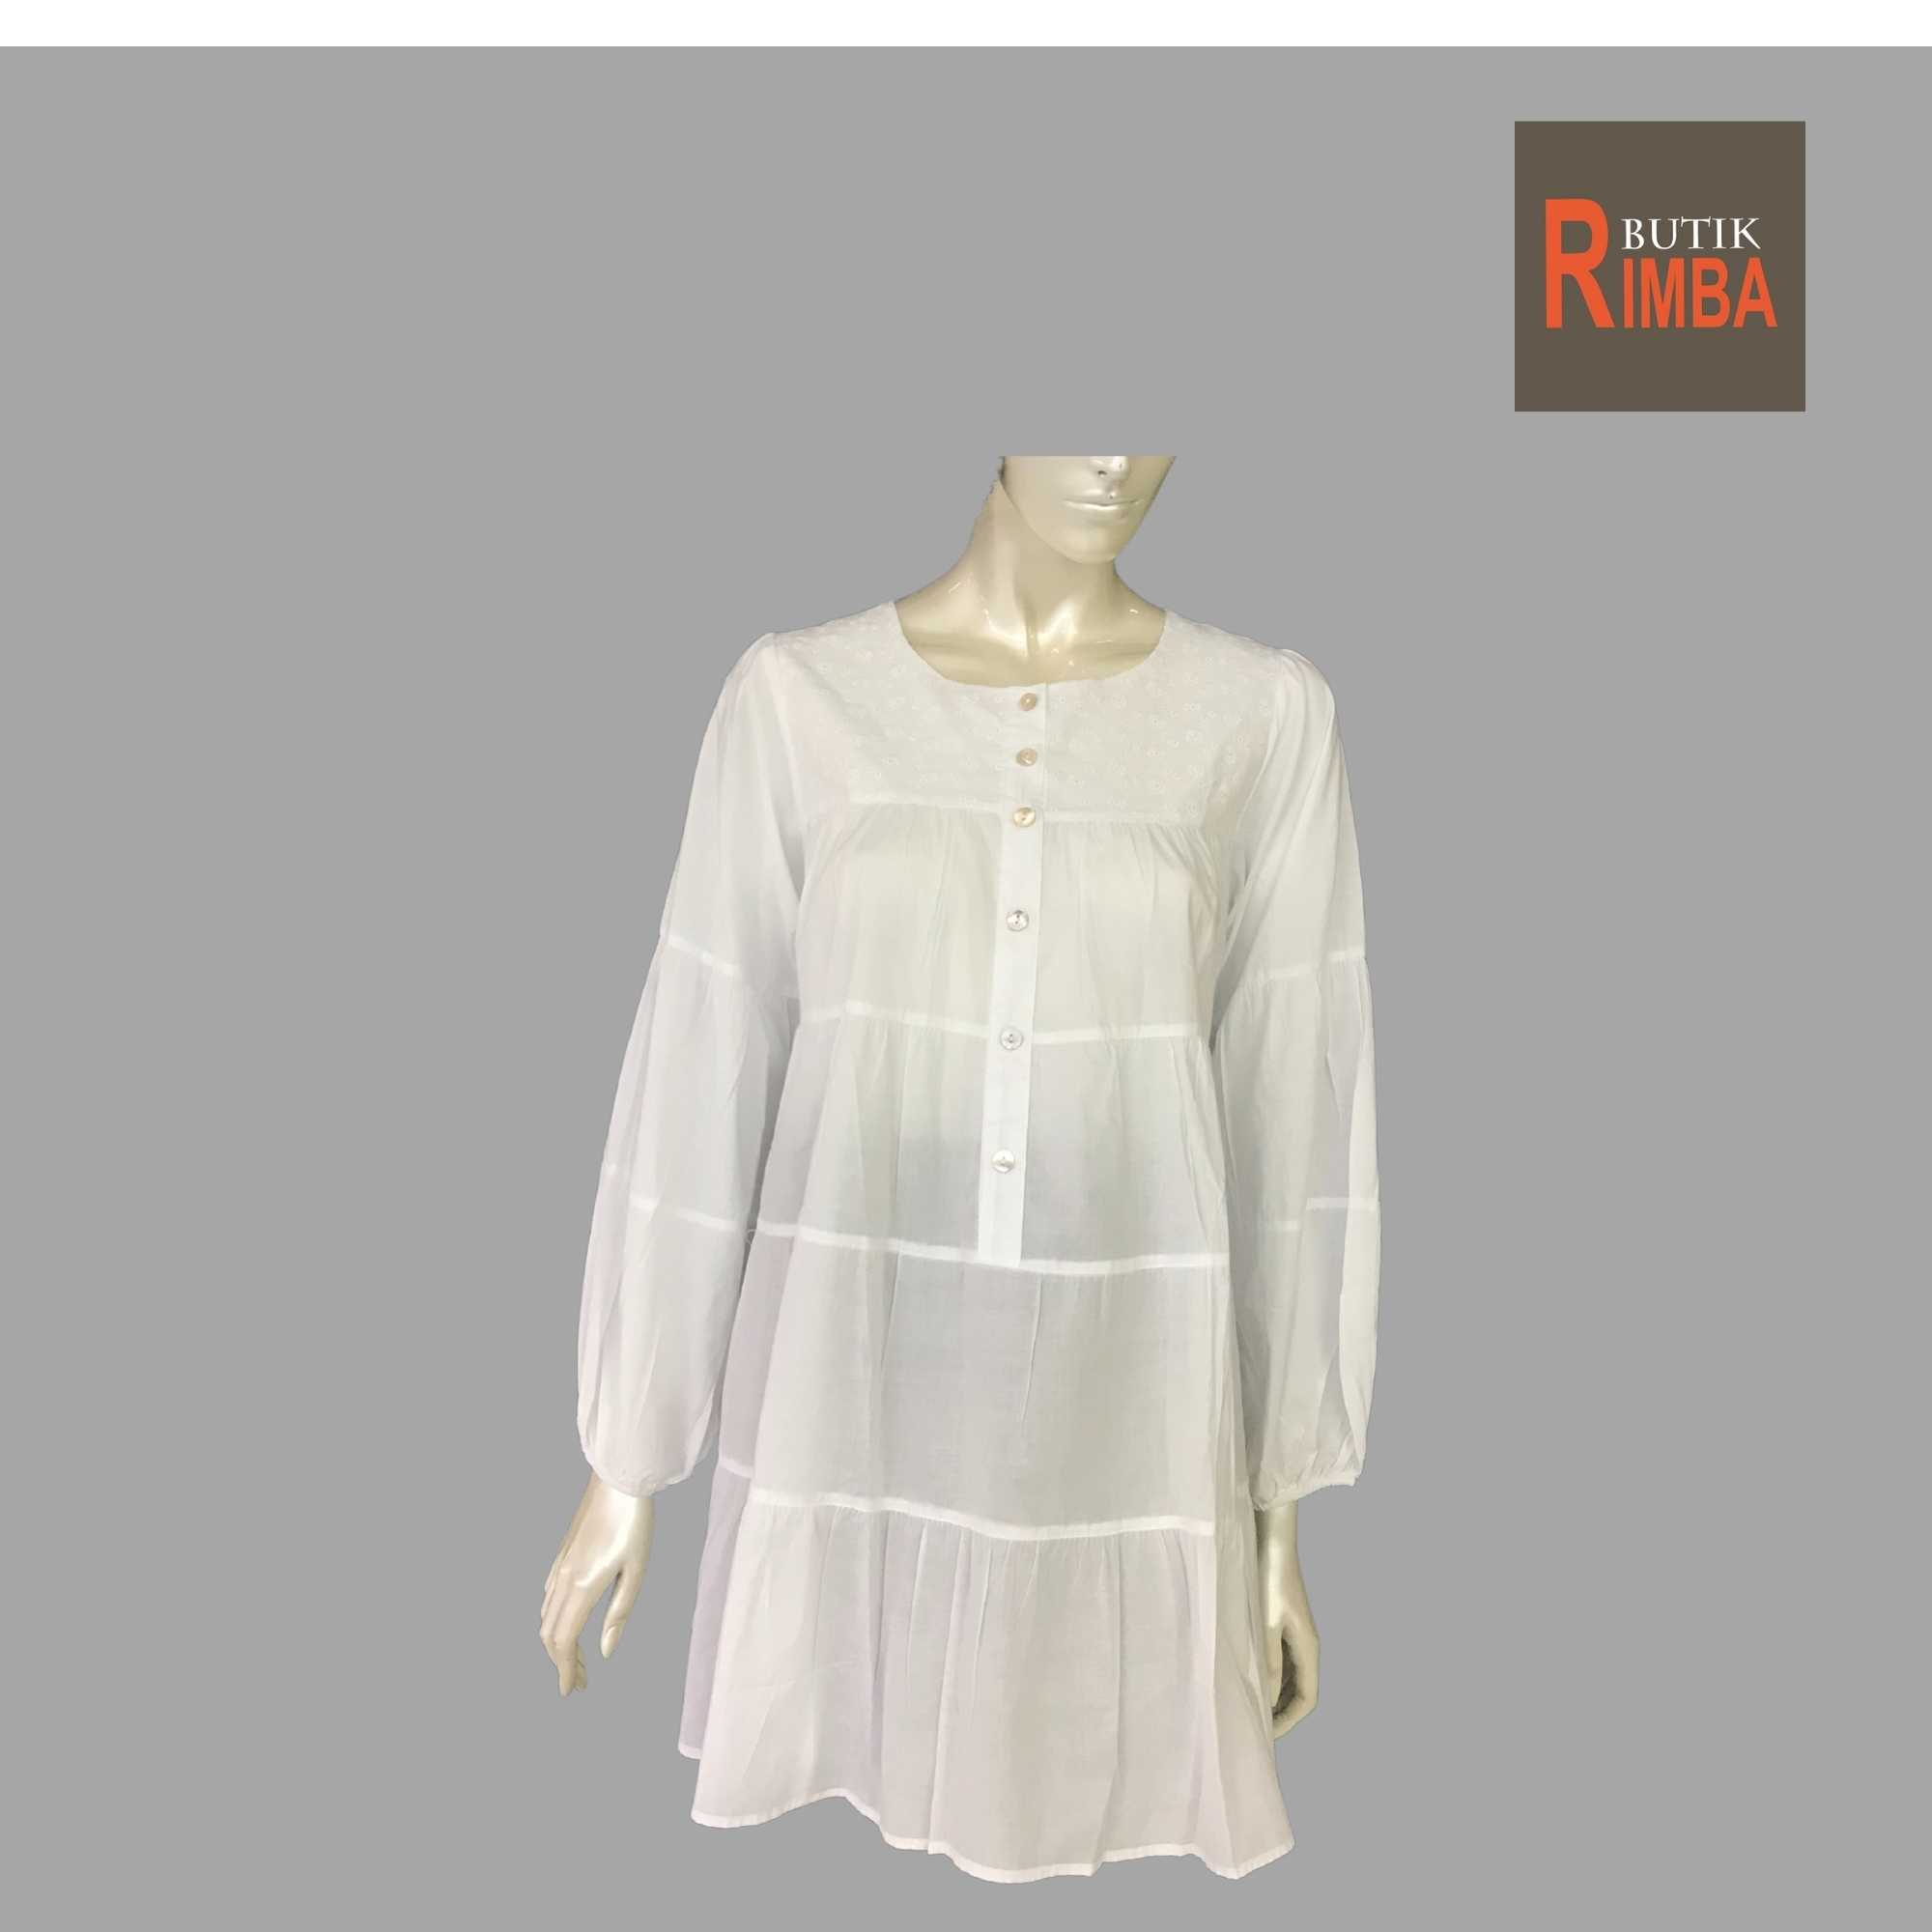 WOMEN CASUAL AND COMFORTABLE WHITE BLOUSE COTTON FREE SIZE PATTERN 11